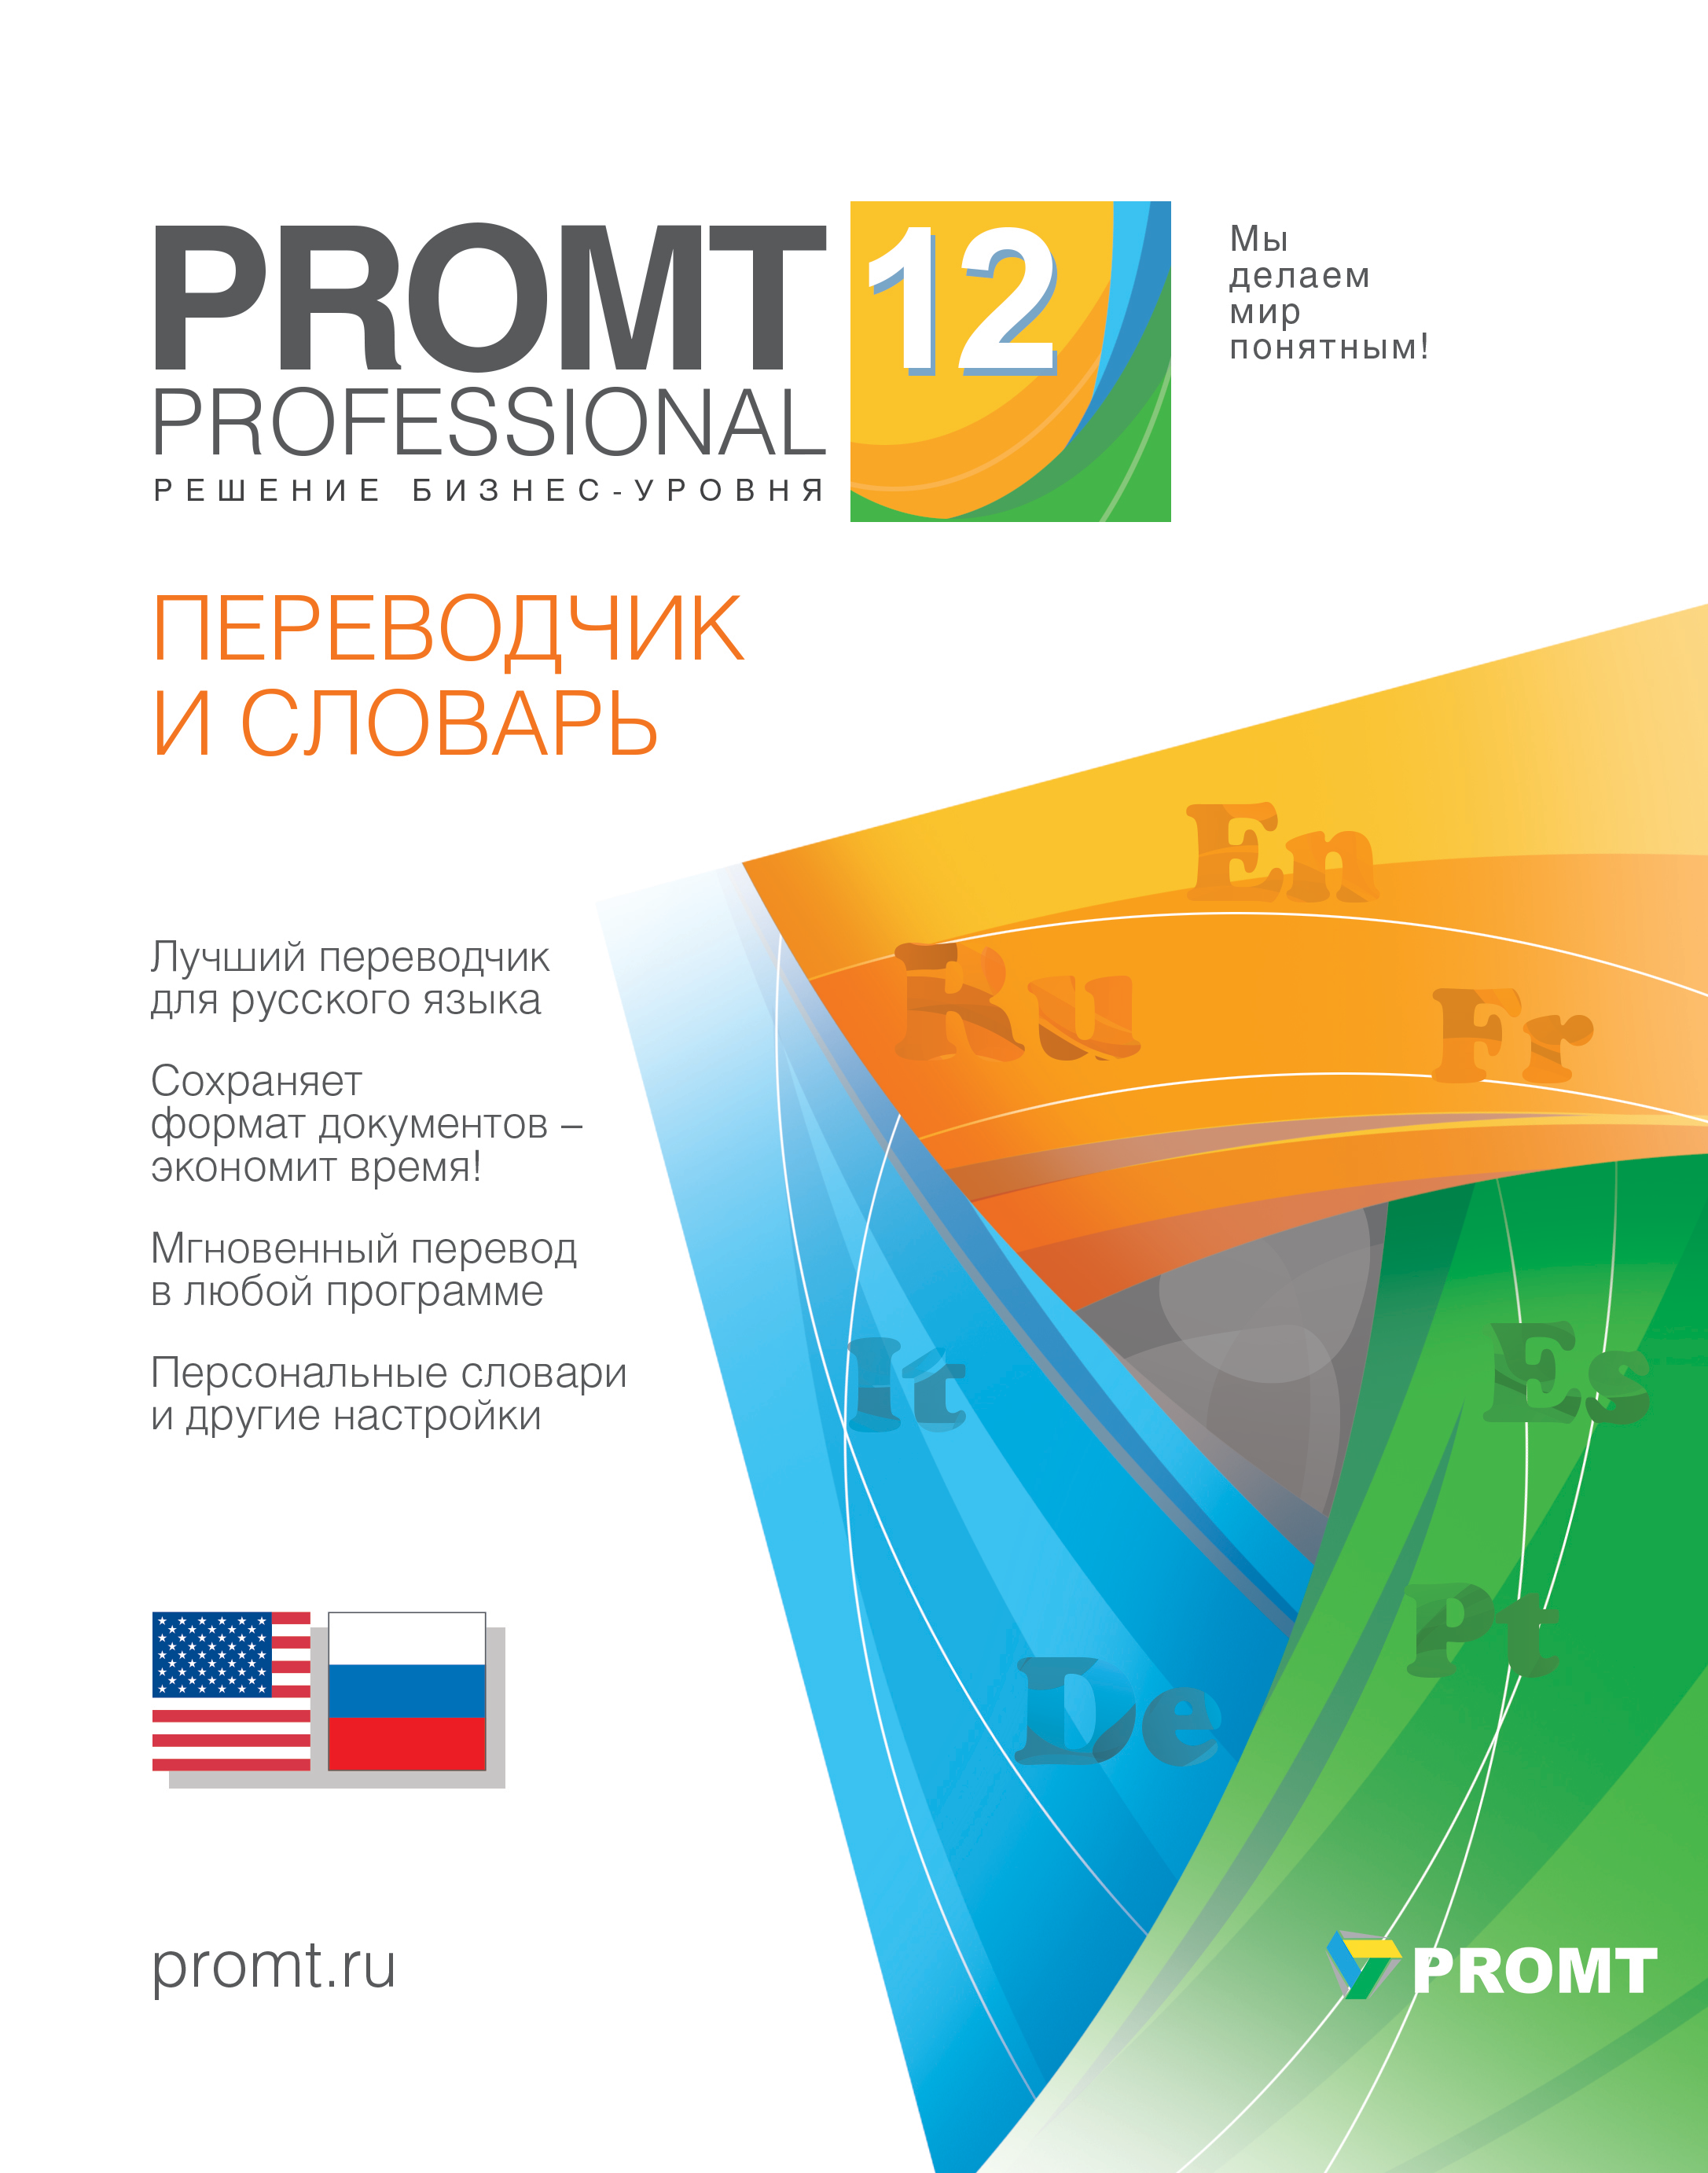 PROMT Professional Home 12 and p-well (the use of home.